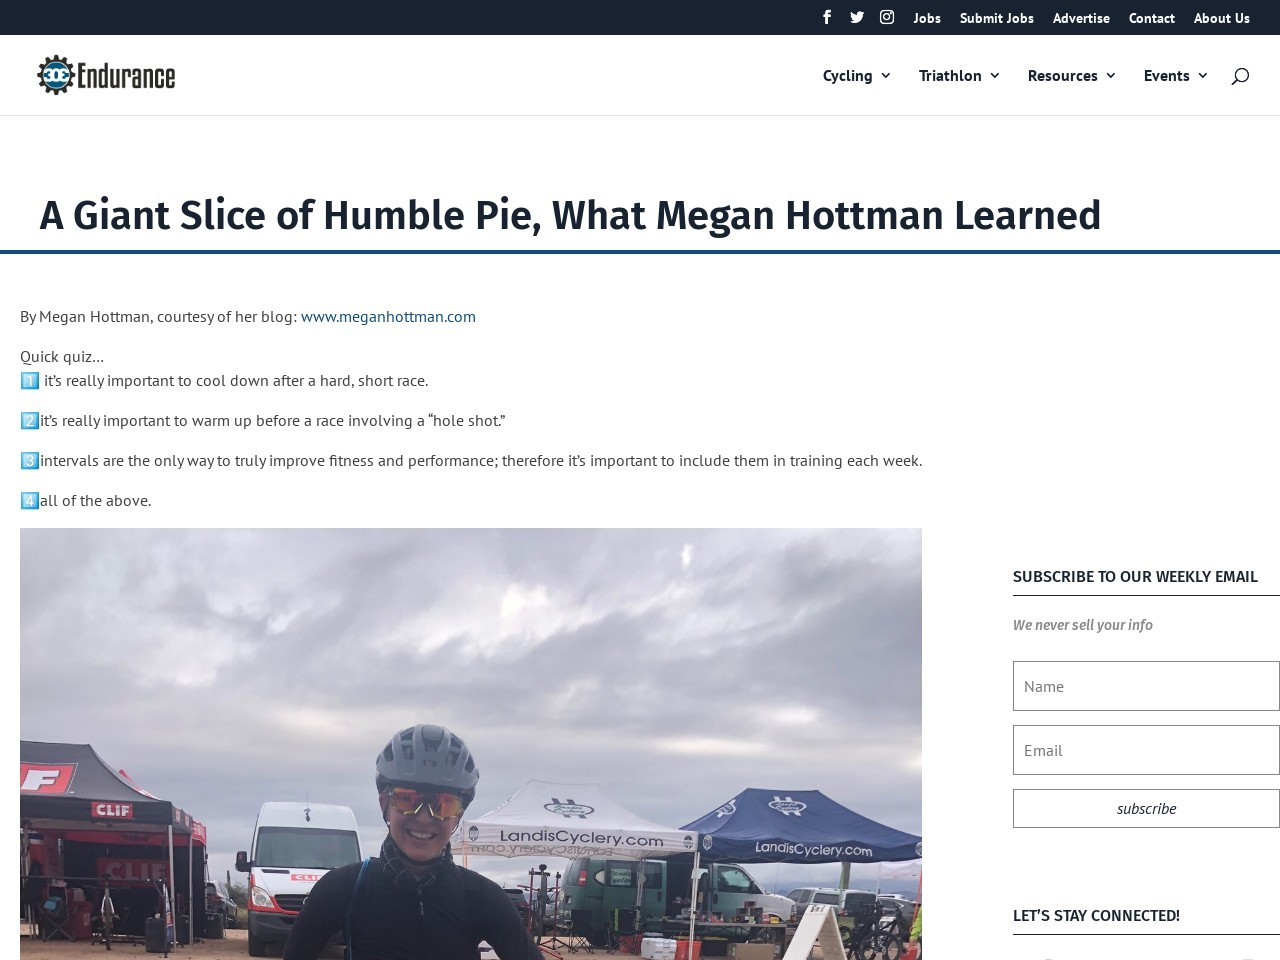 A Giant Slice of Humble Pie, What Megan Hottman Learned